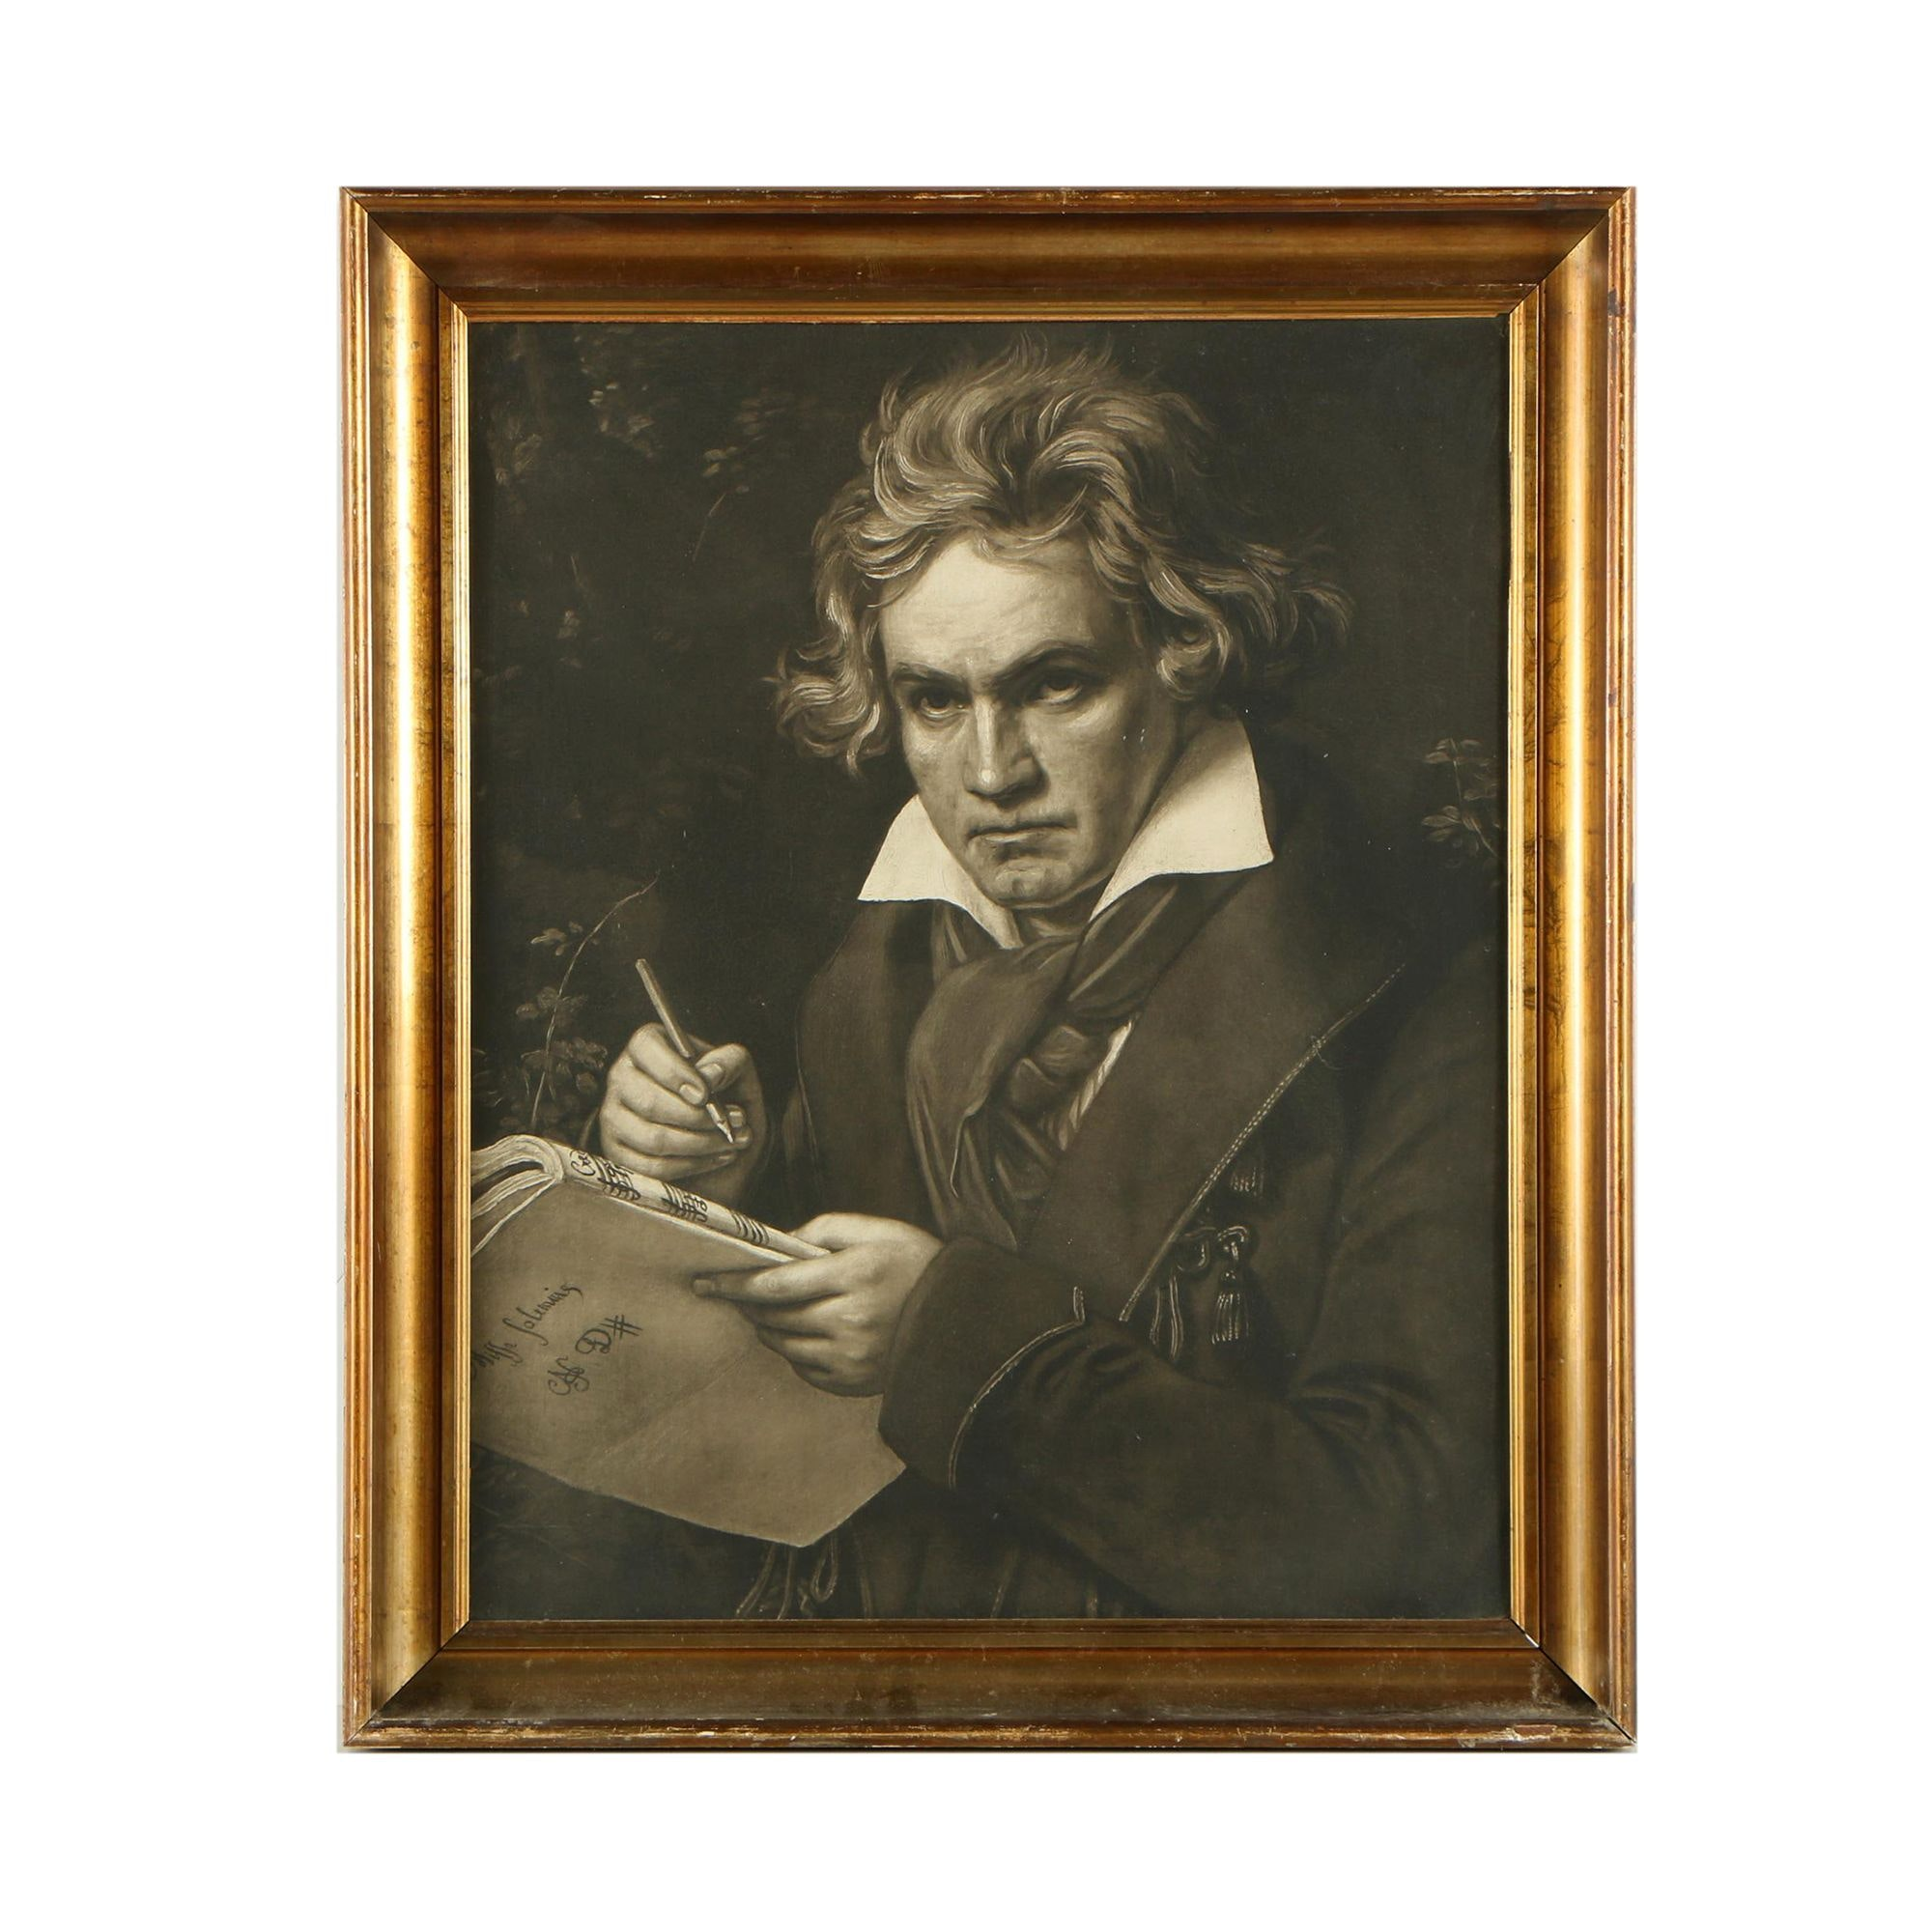 Reproduction Print After Joseph Karl Stieler's Portrait of Beethoven